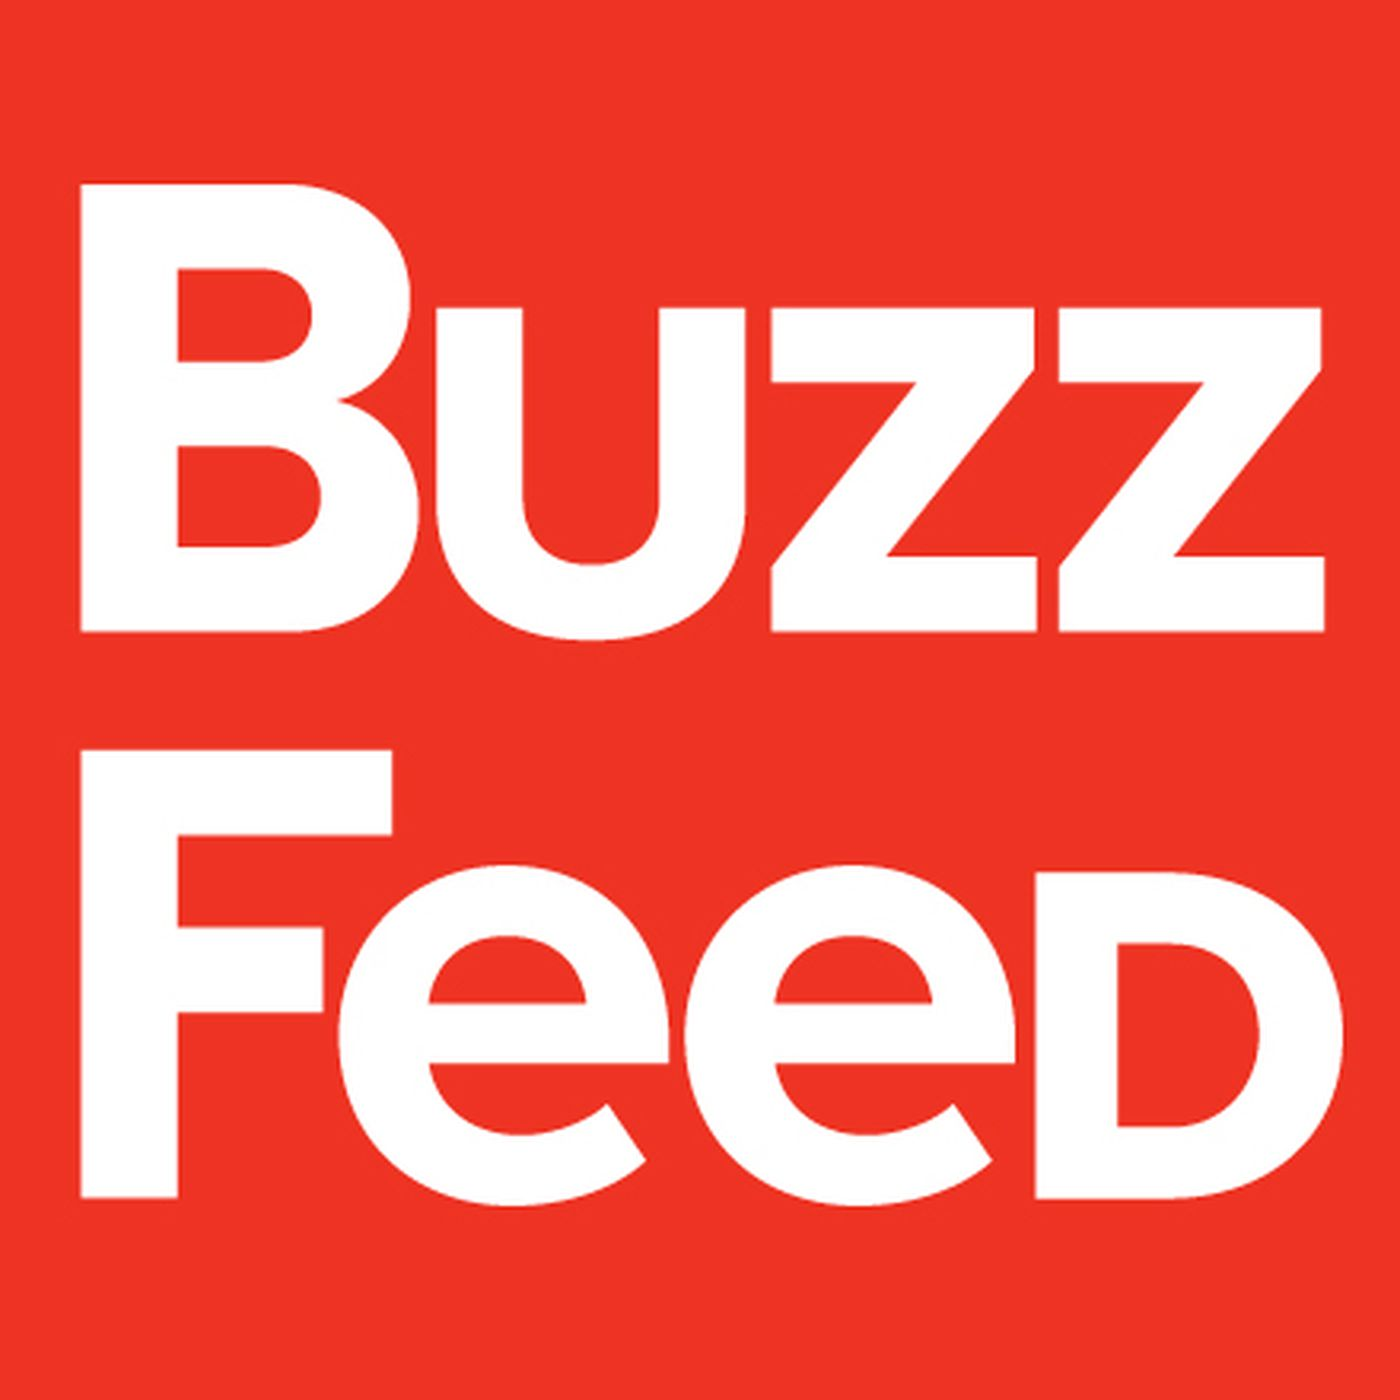 BuzzFeed buys developer to focus on building native apps